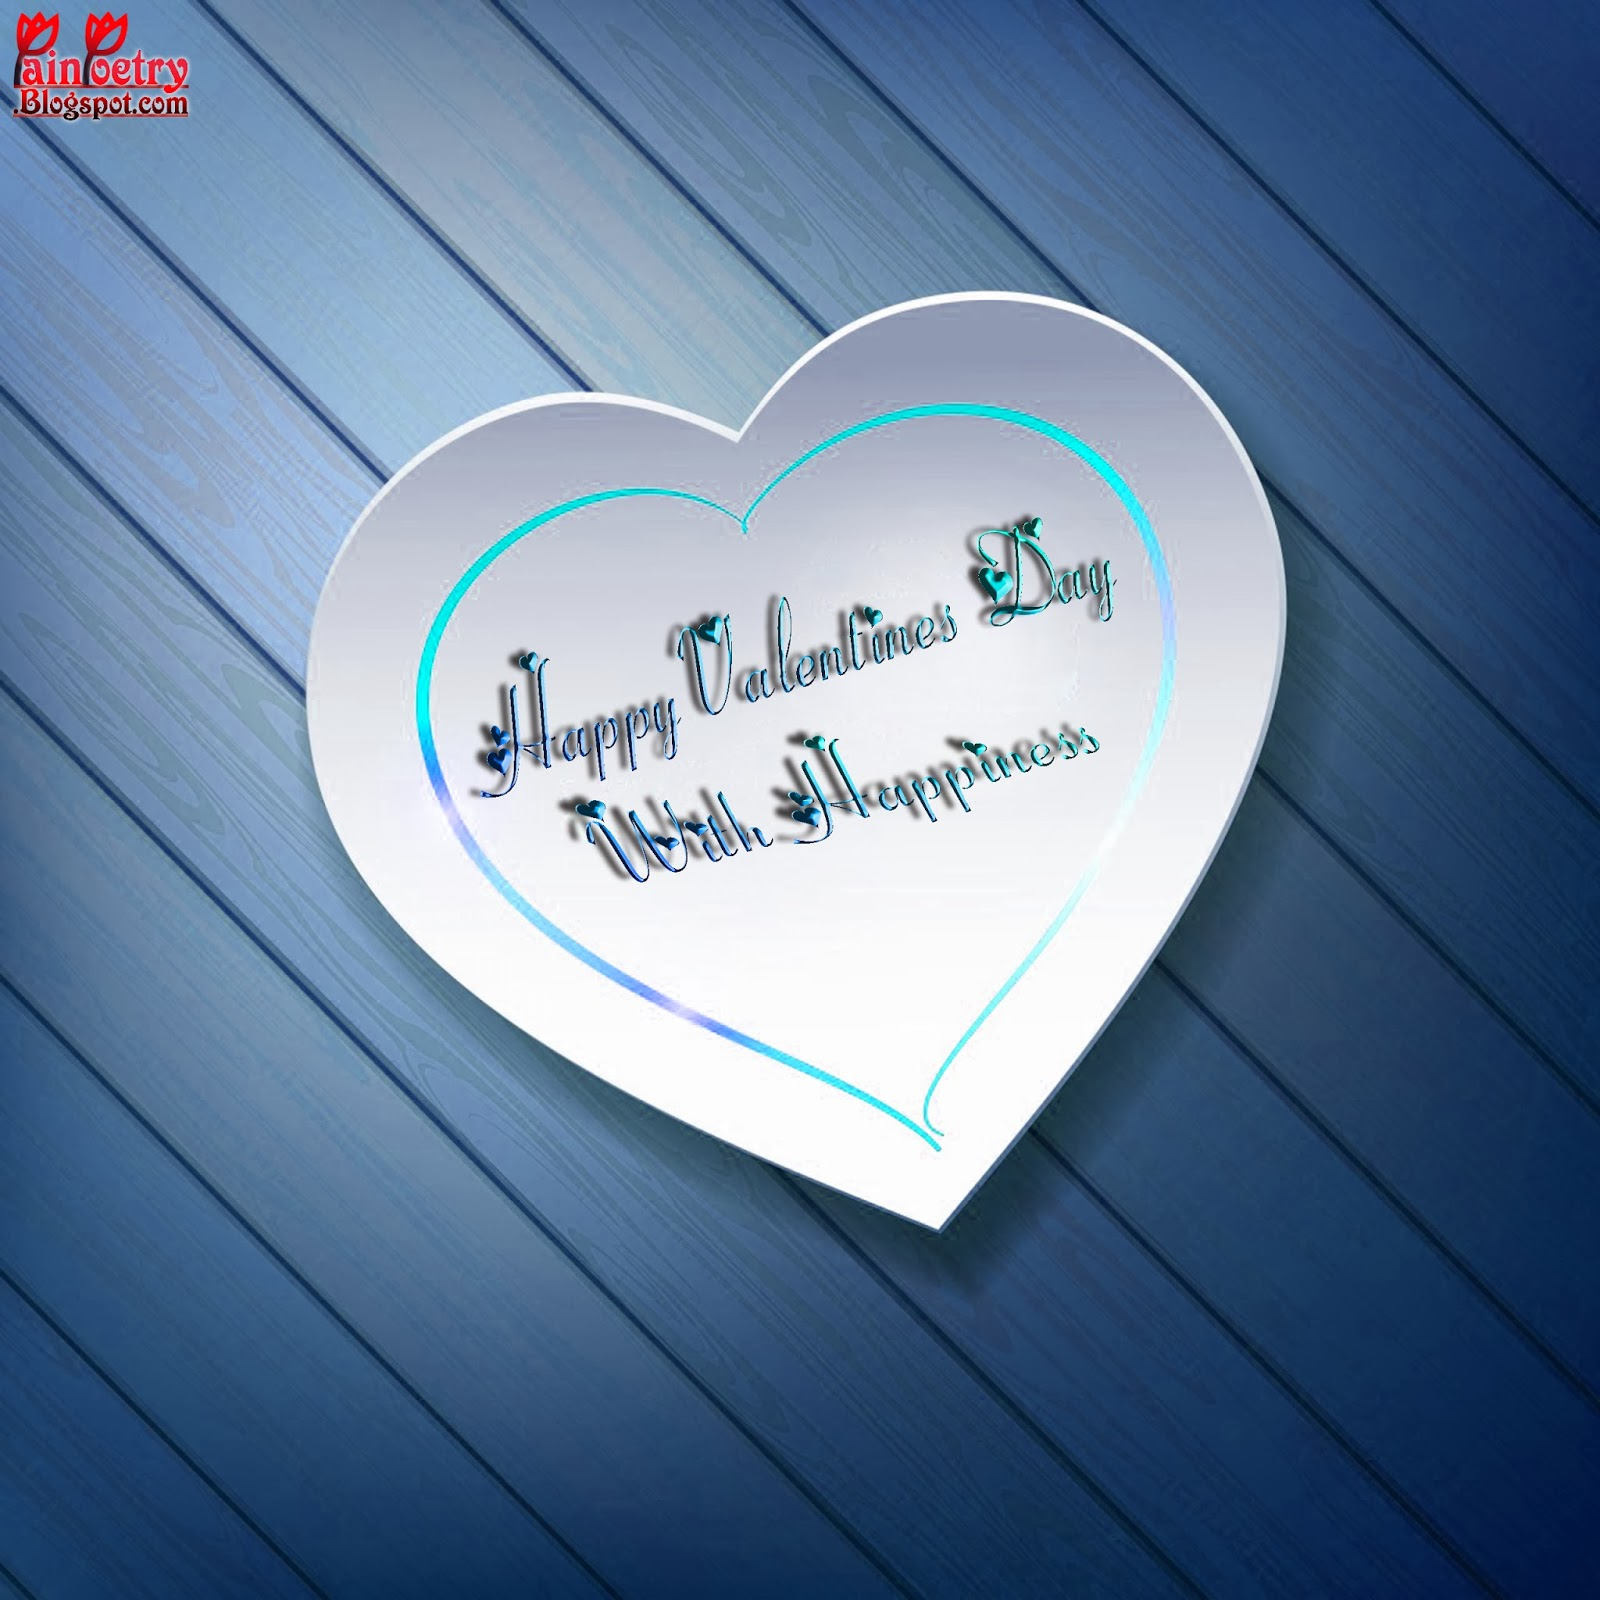 Happy-Valentines-Day-Wishes-Walpapers-For-Walentines-Day-Heart-Image-HD-Wide